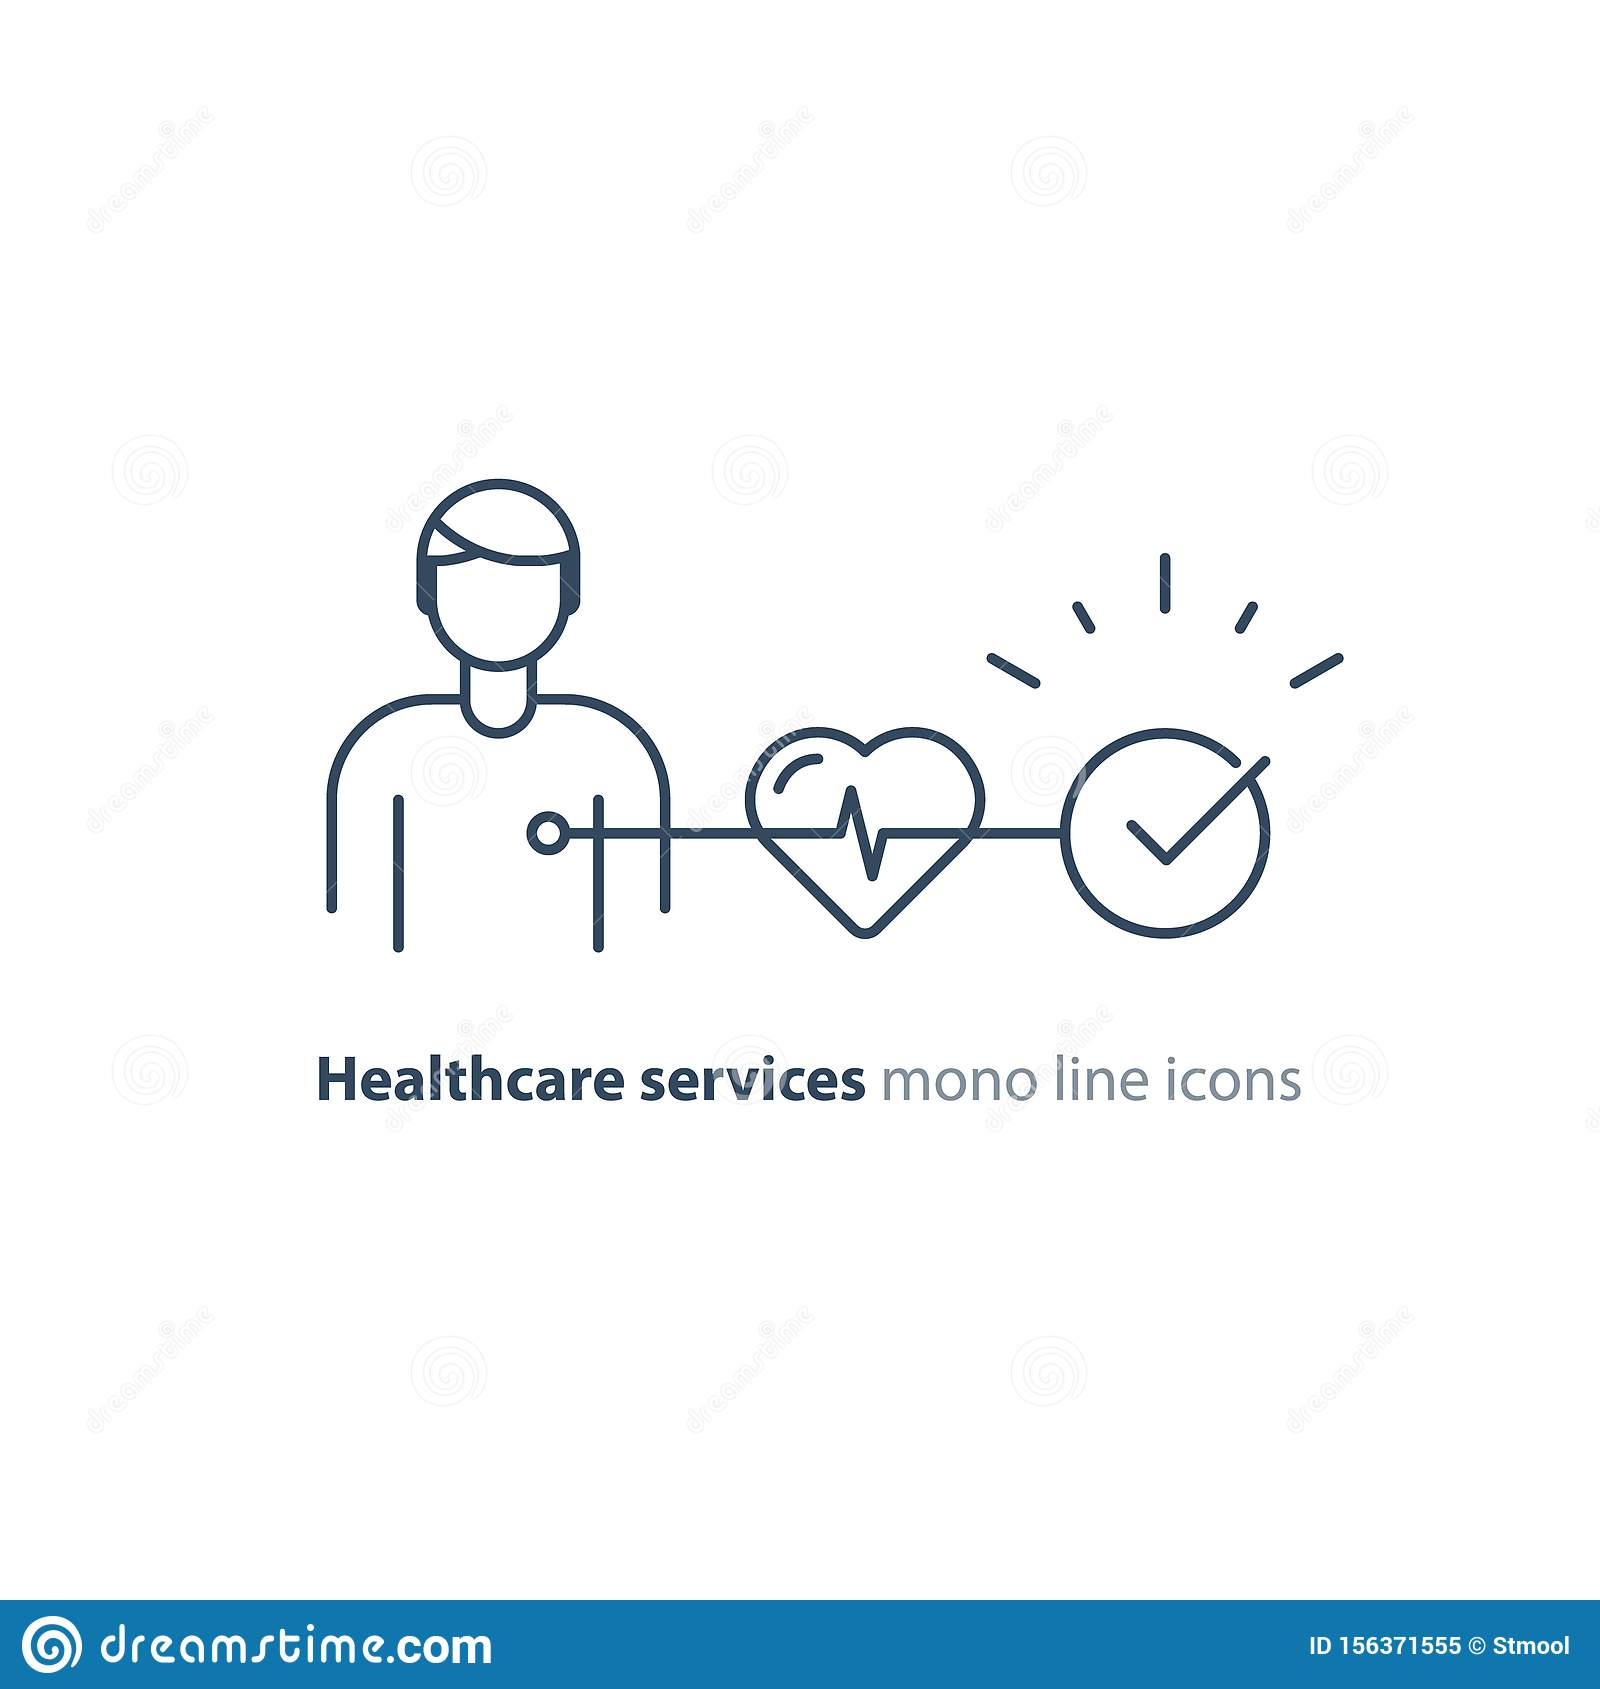 Heart test line icon, electrocardiogram monitor logo, cardiology examination